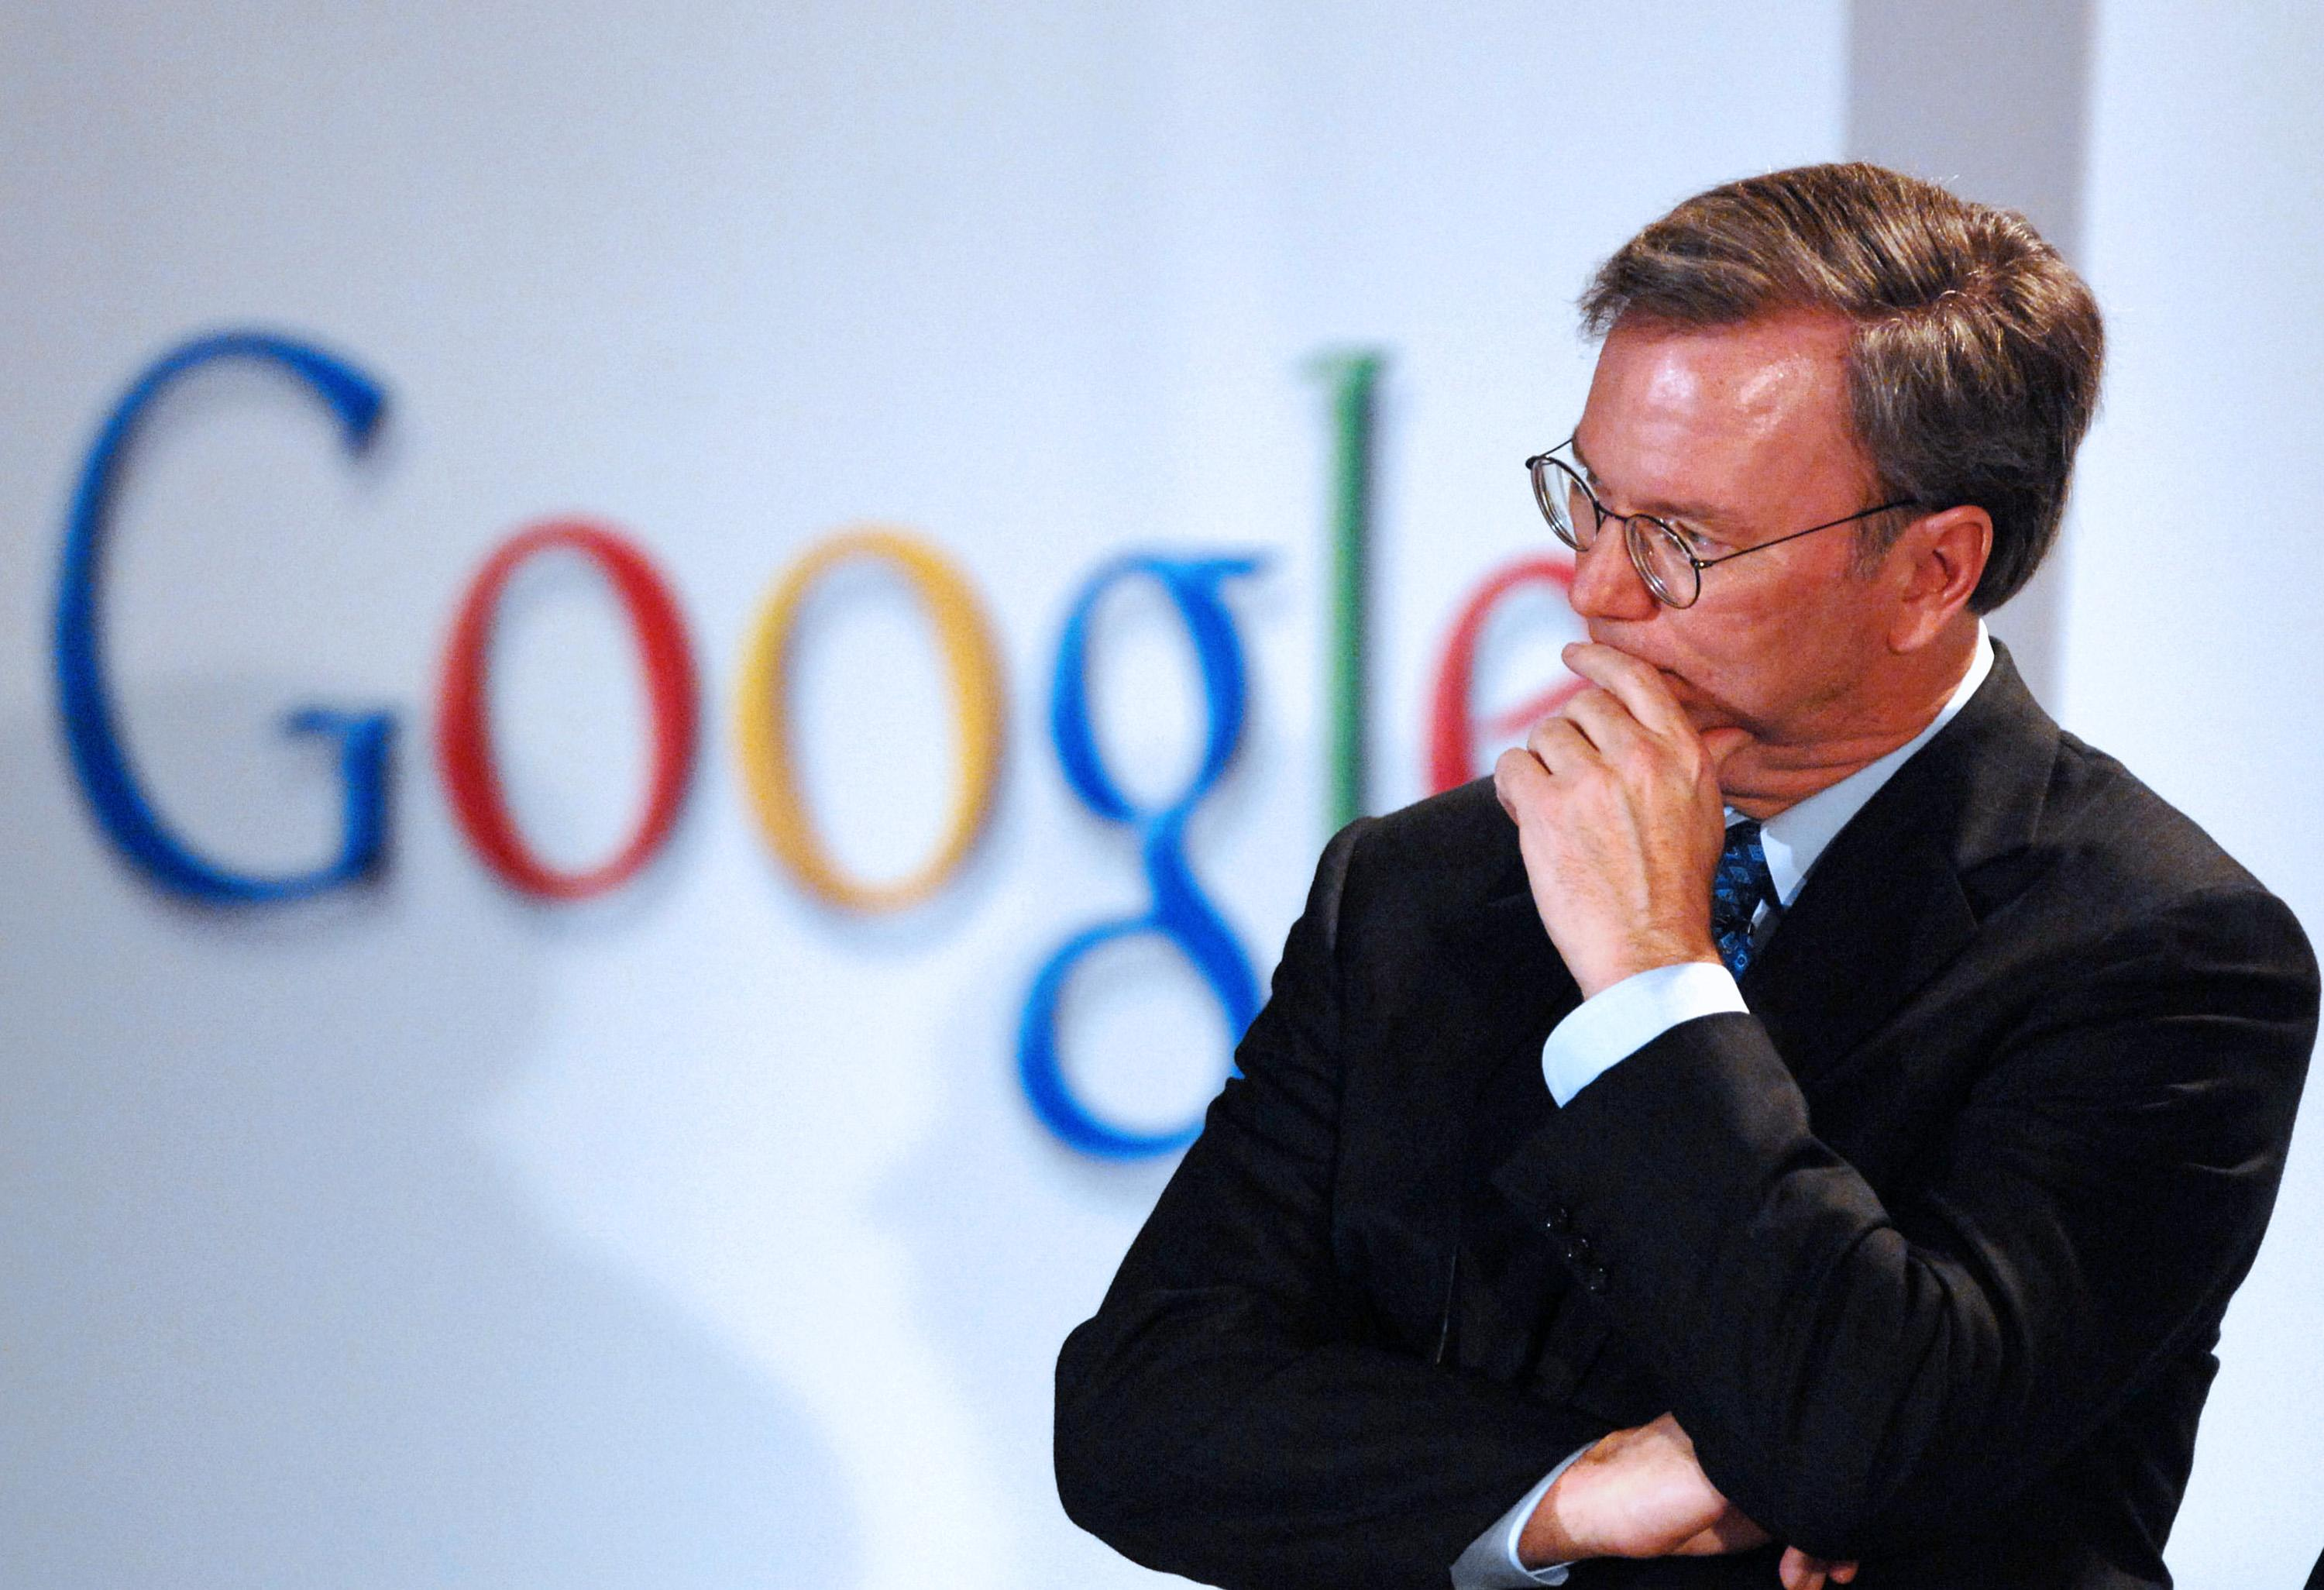 eric schmidt google ceo Alphabet has announced that former google ceo eric schmidt will be stepping down from his role as alphabet's executive chairman schmidt will be transitioning to a new position as a technical advisor at the company as he continues to serve on alphabet's board schmidt has served in senior roles at.